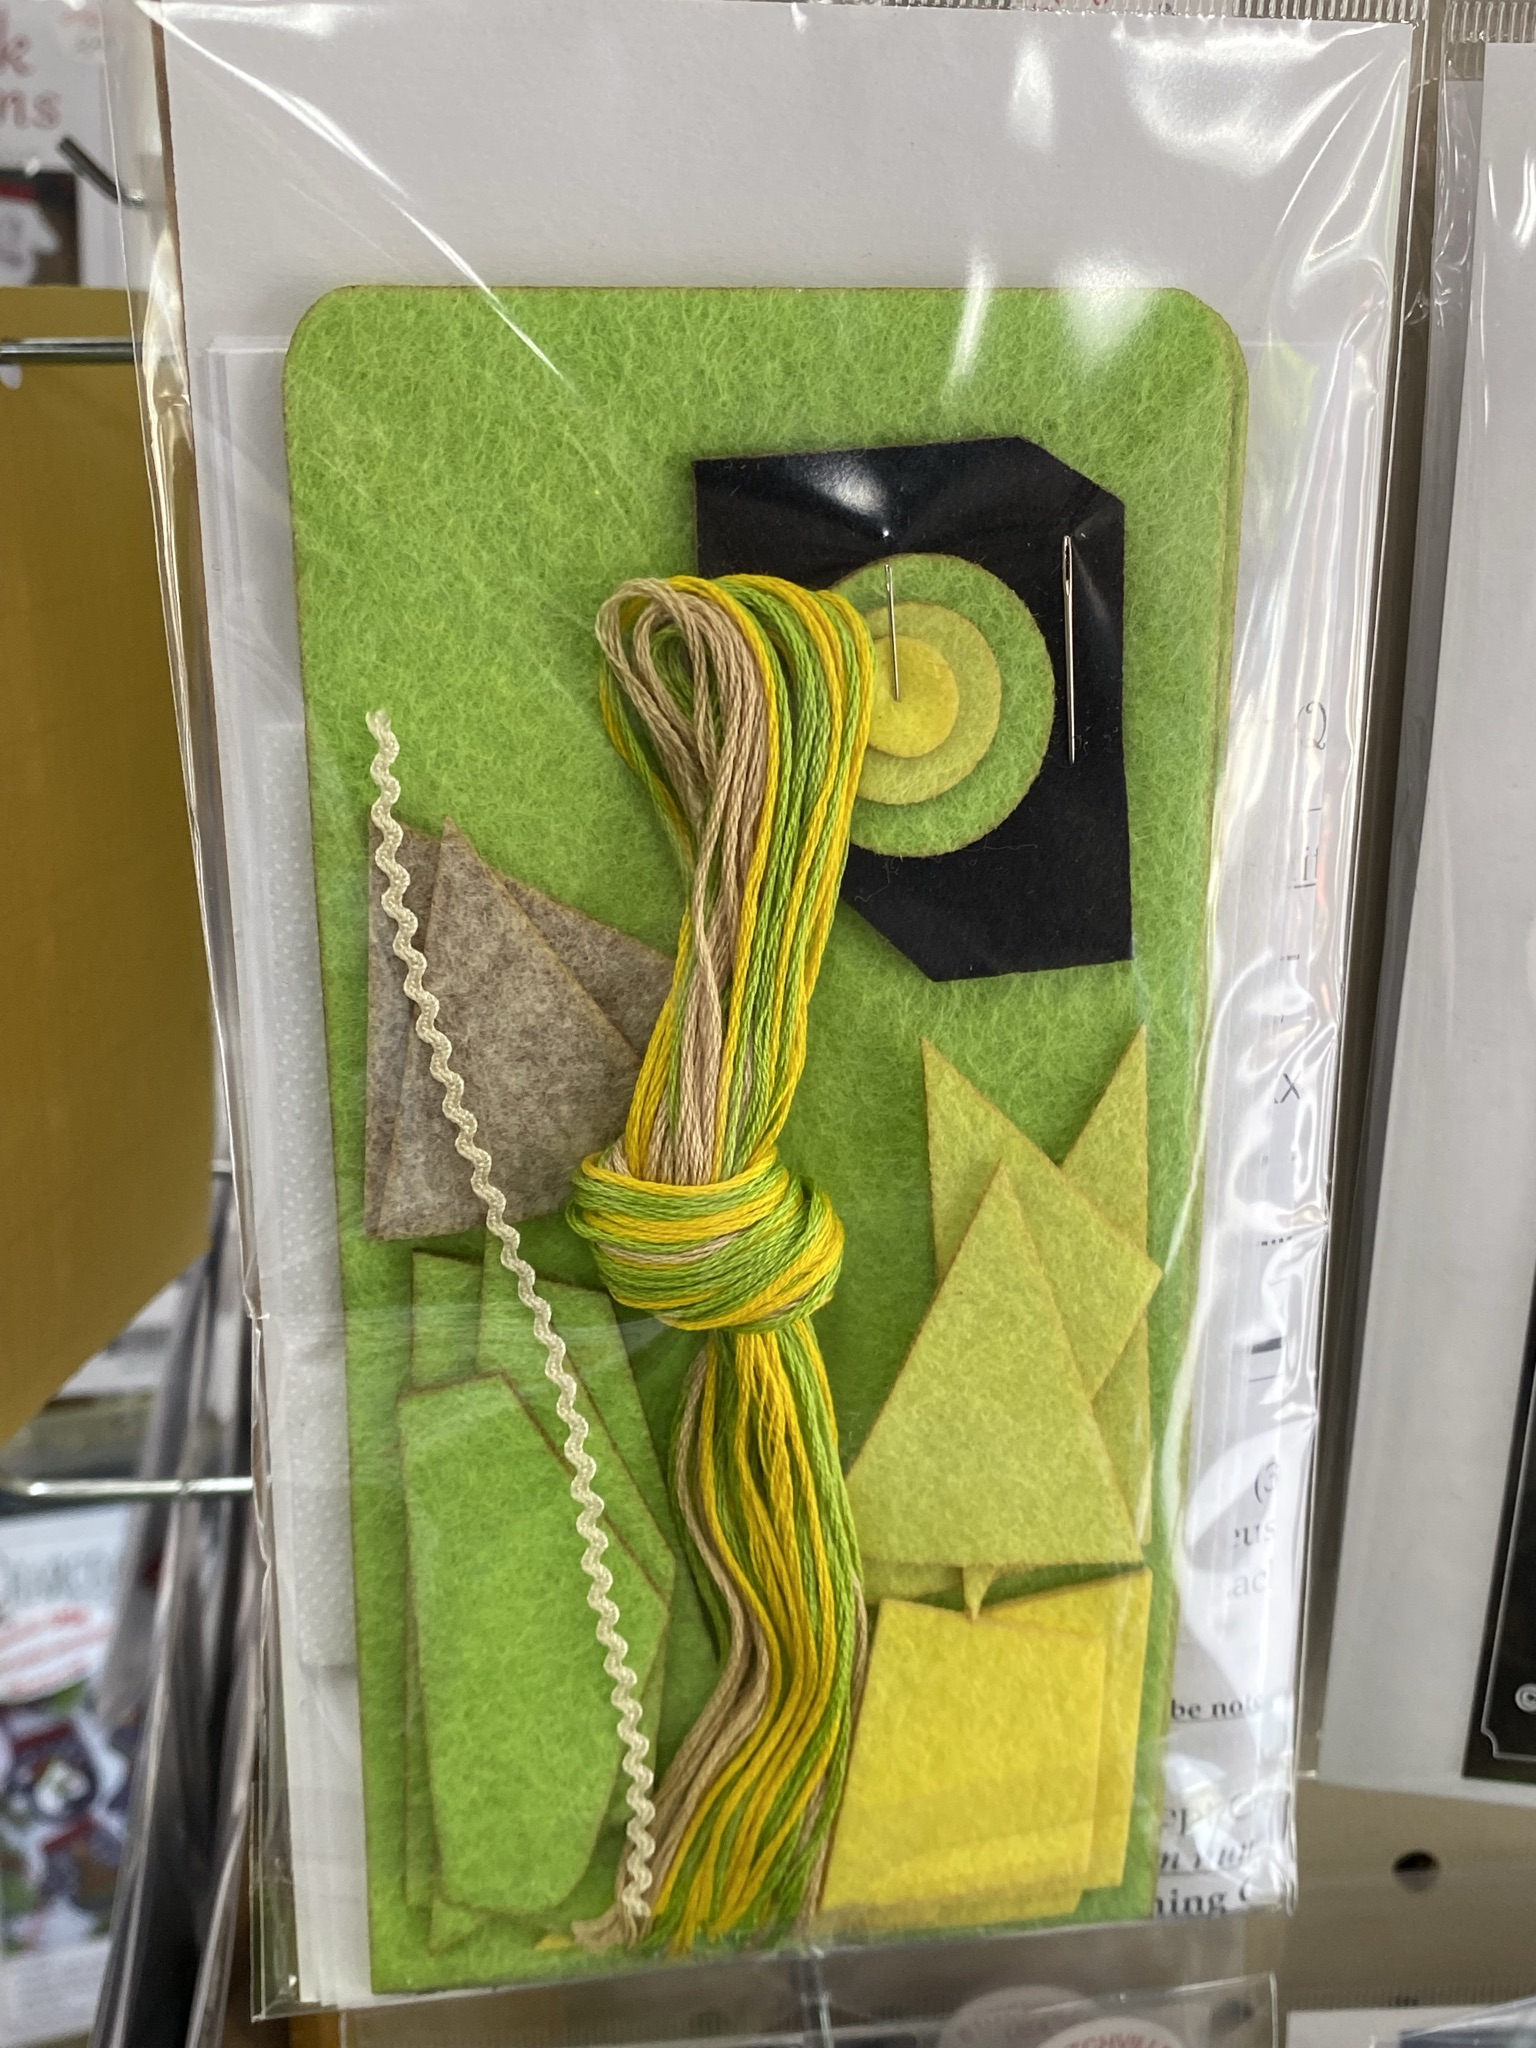 Contents of the wool applique glasses cases kit